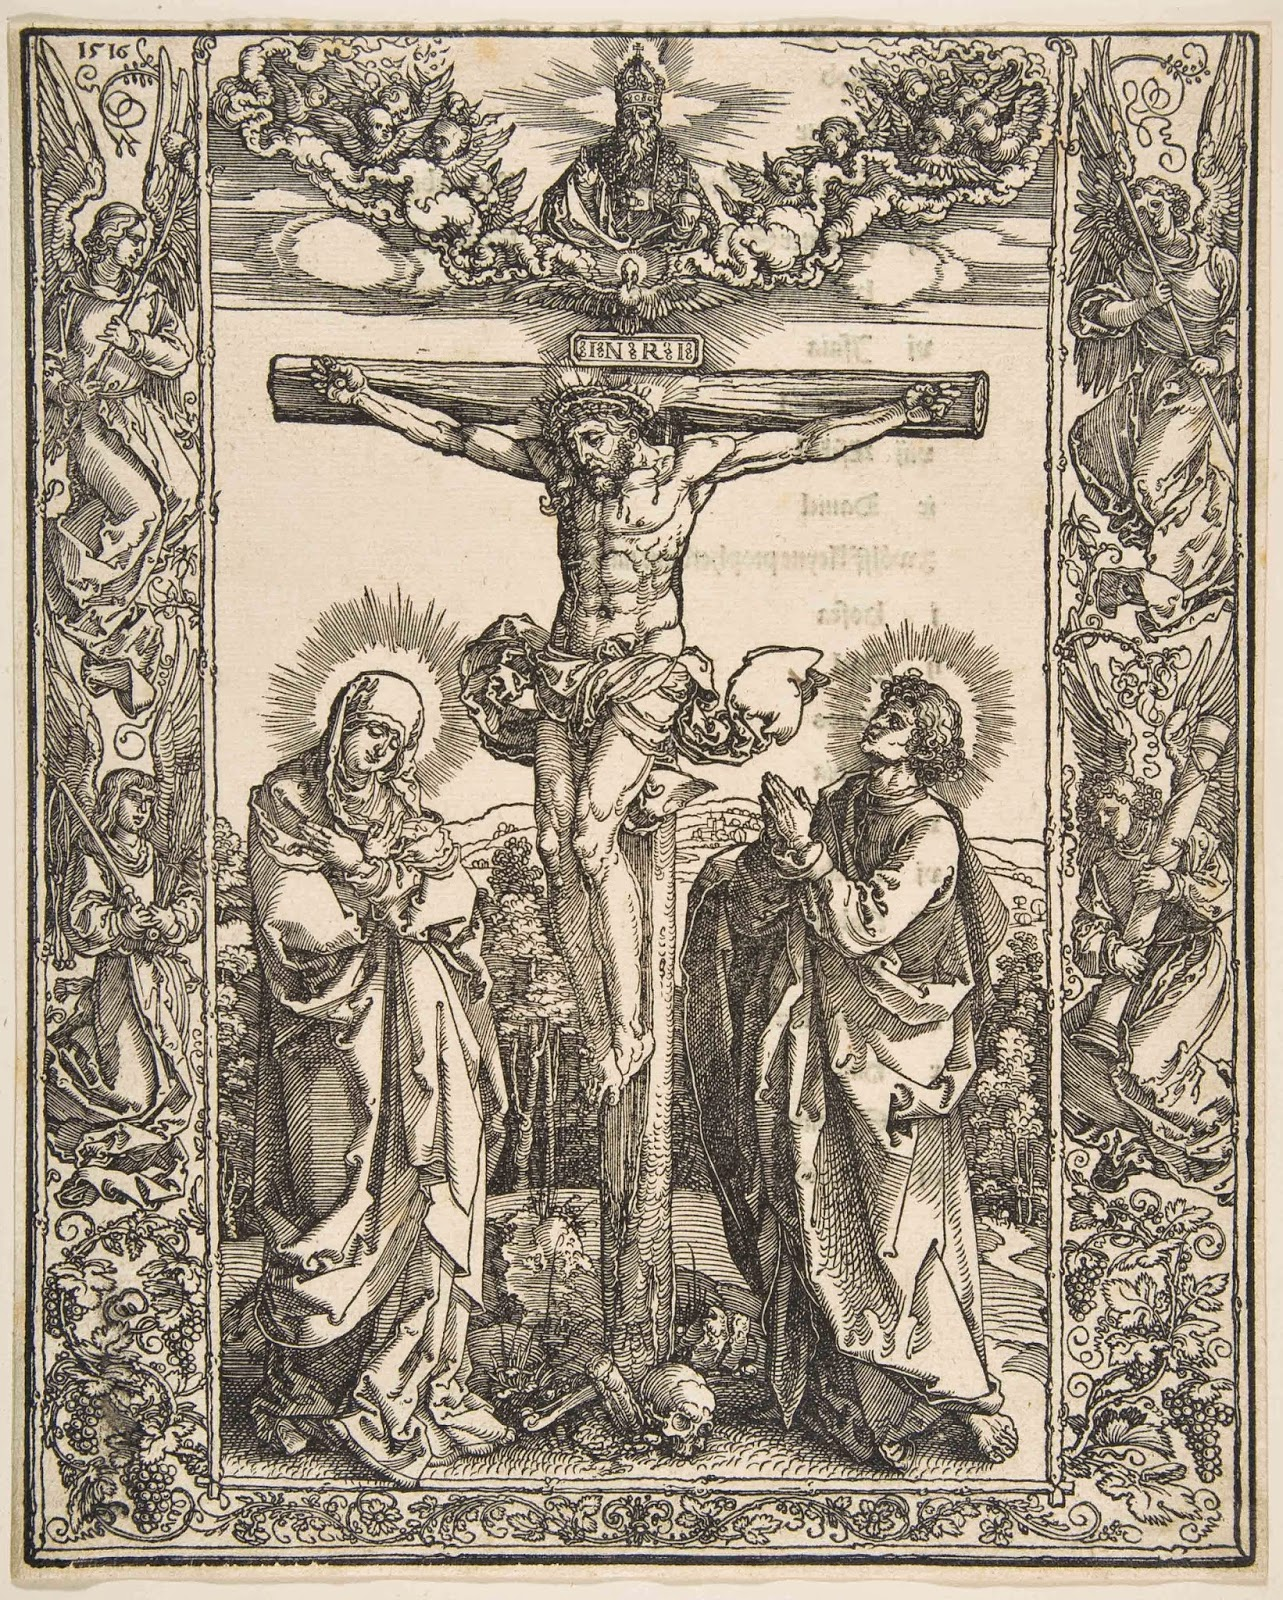 Art artists albrecht drer part 7 1516 christ on the cross between the virgin and st john woodcut 277 x 222 cm metropolitan museum of art new york buycottarizona